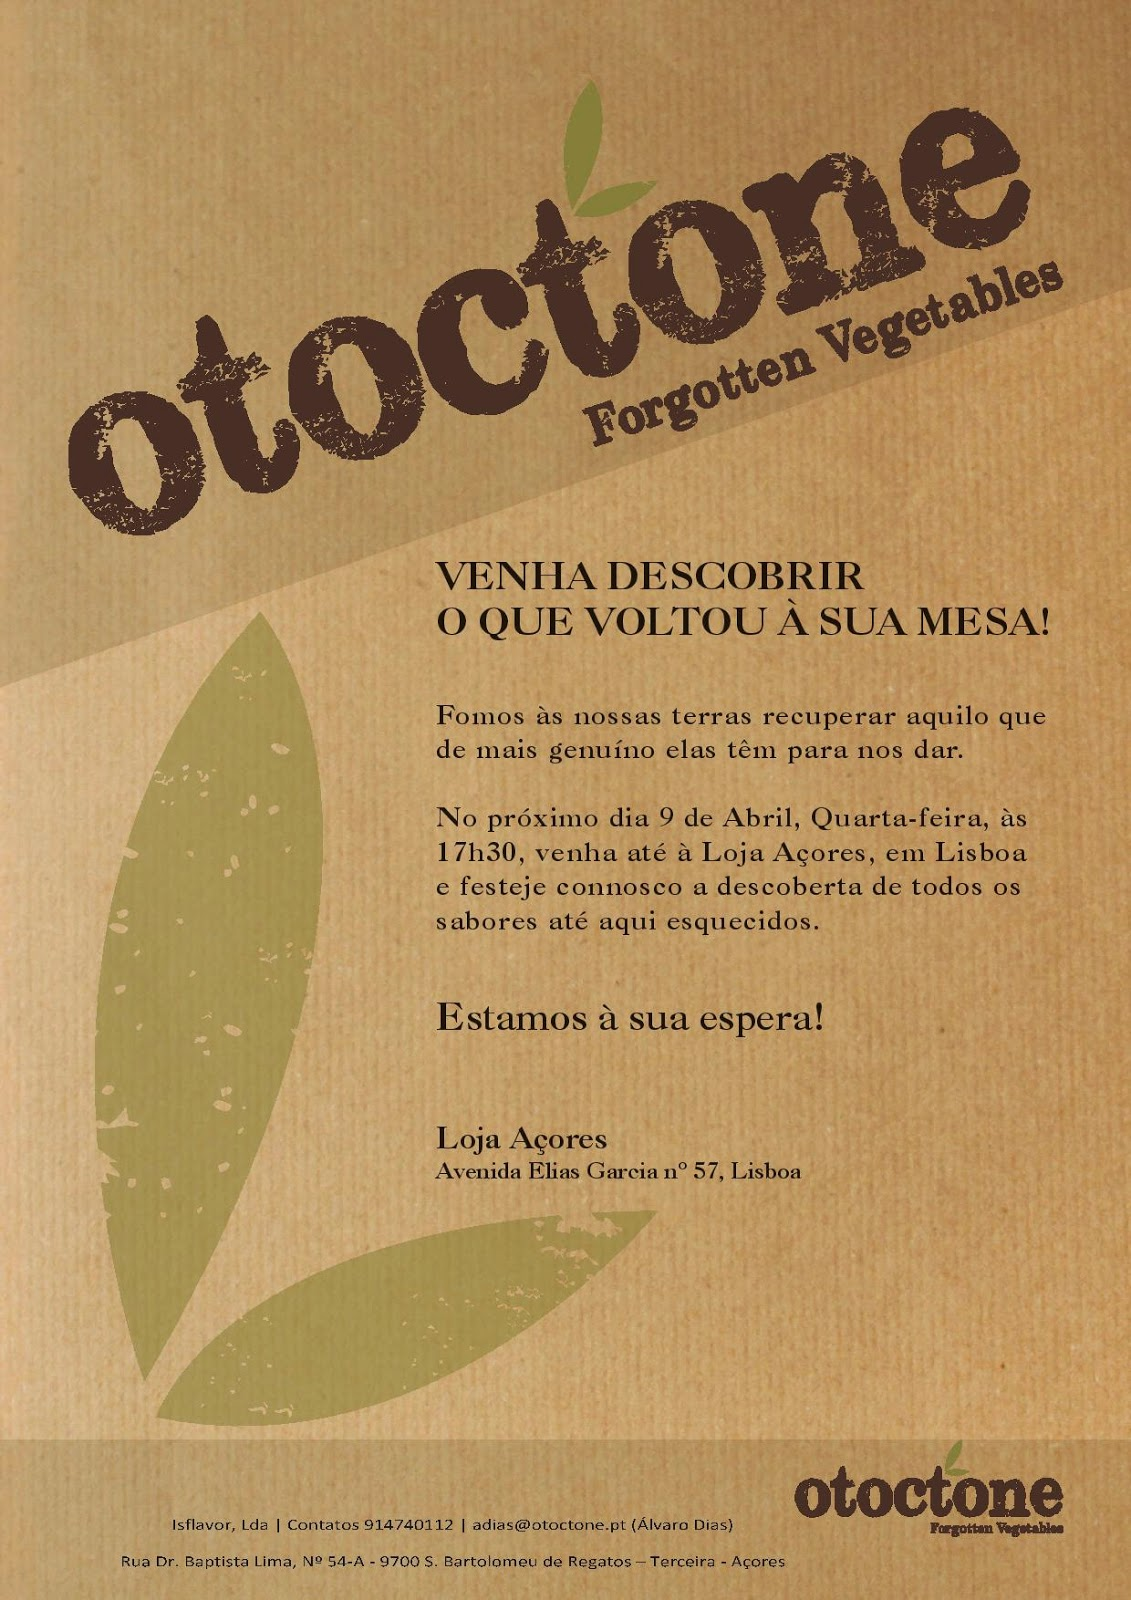 OTOCTONE, FORGOTTEN VEGETABLES